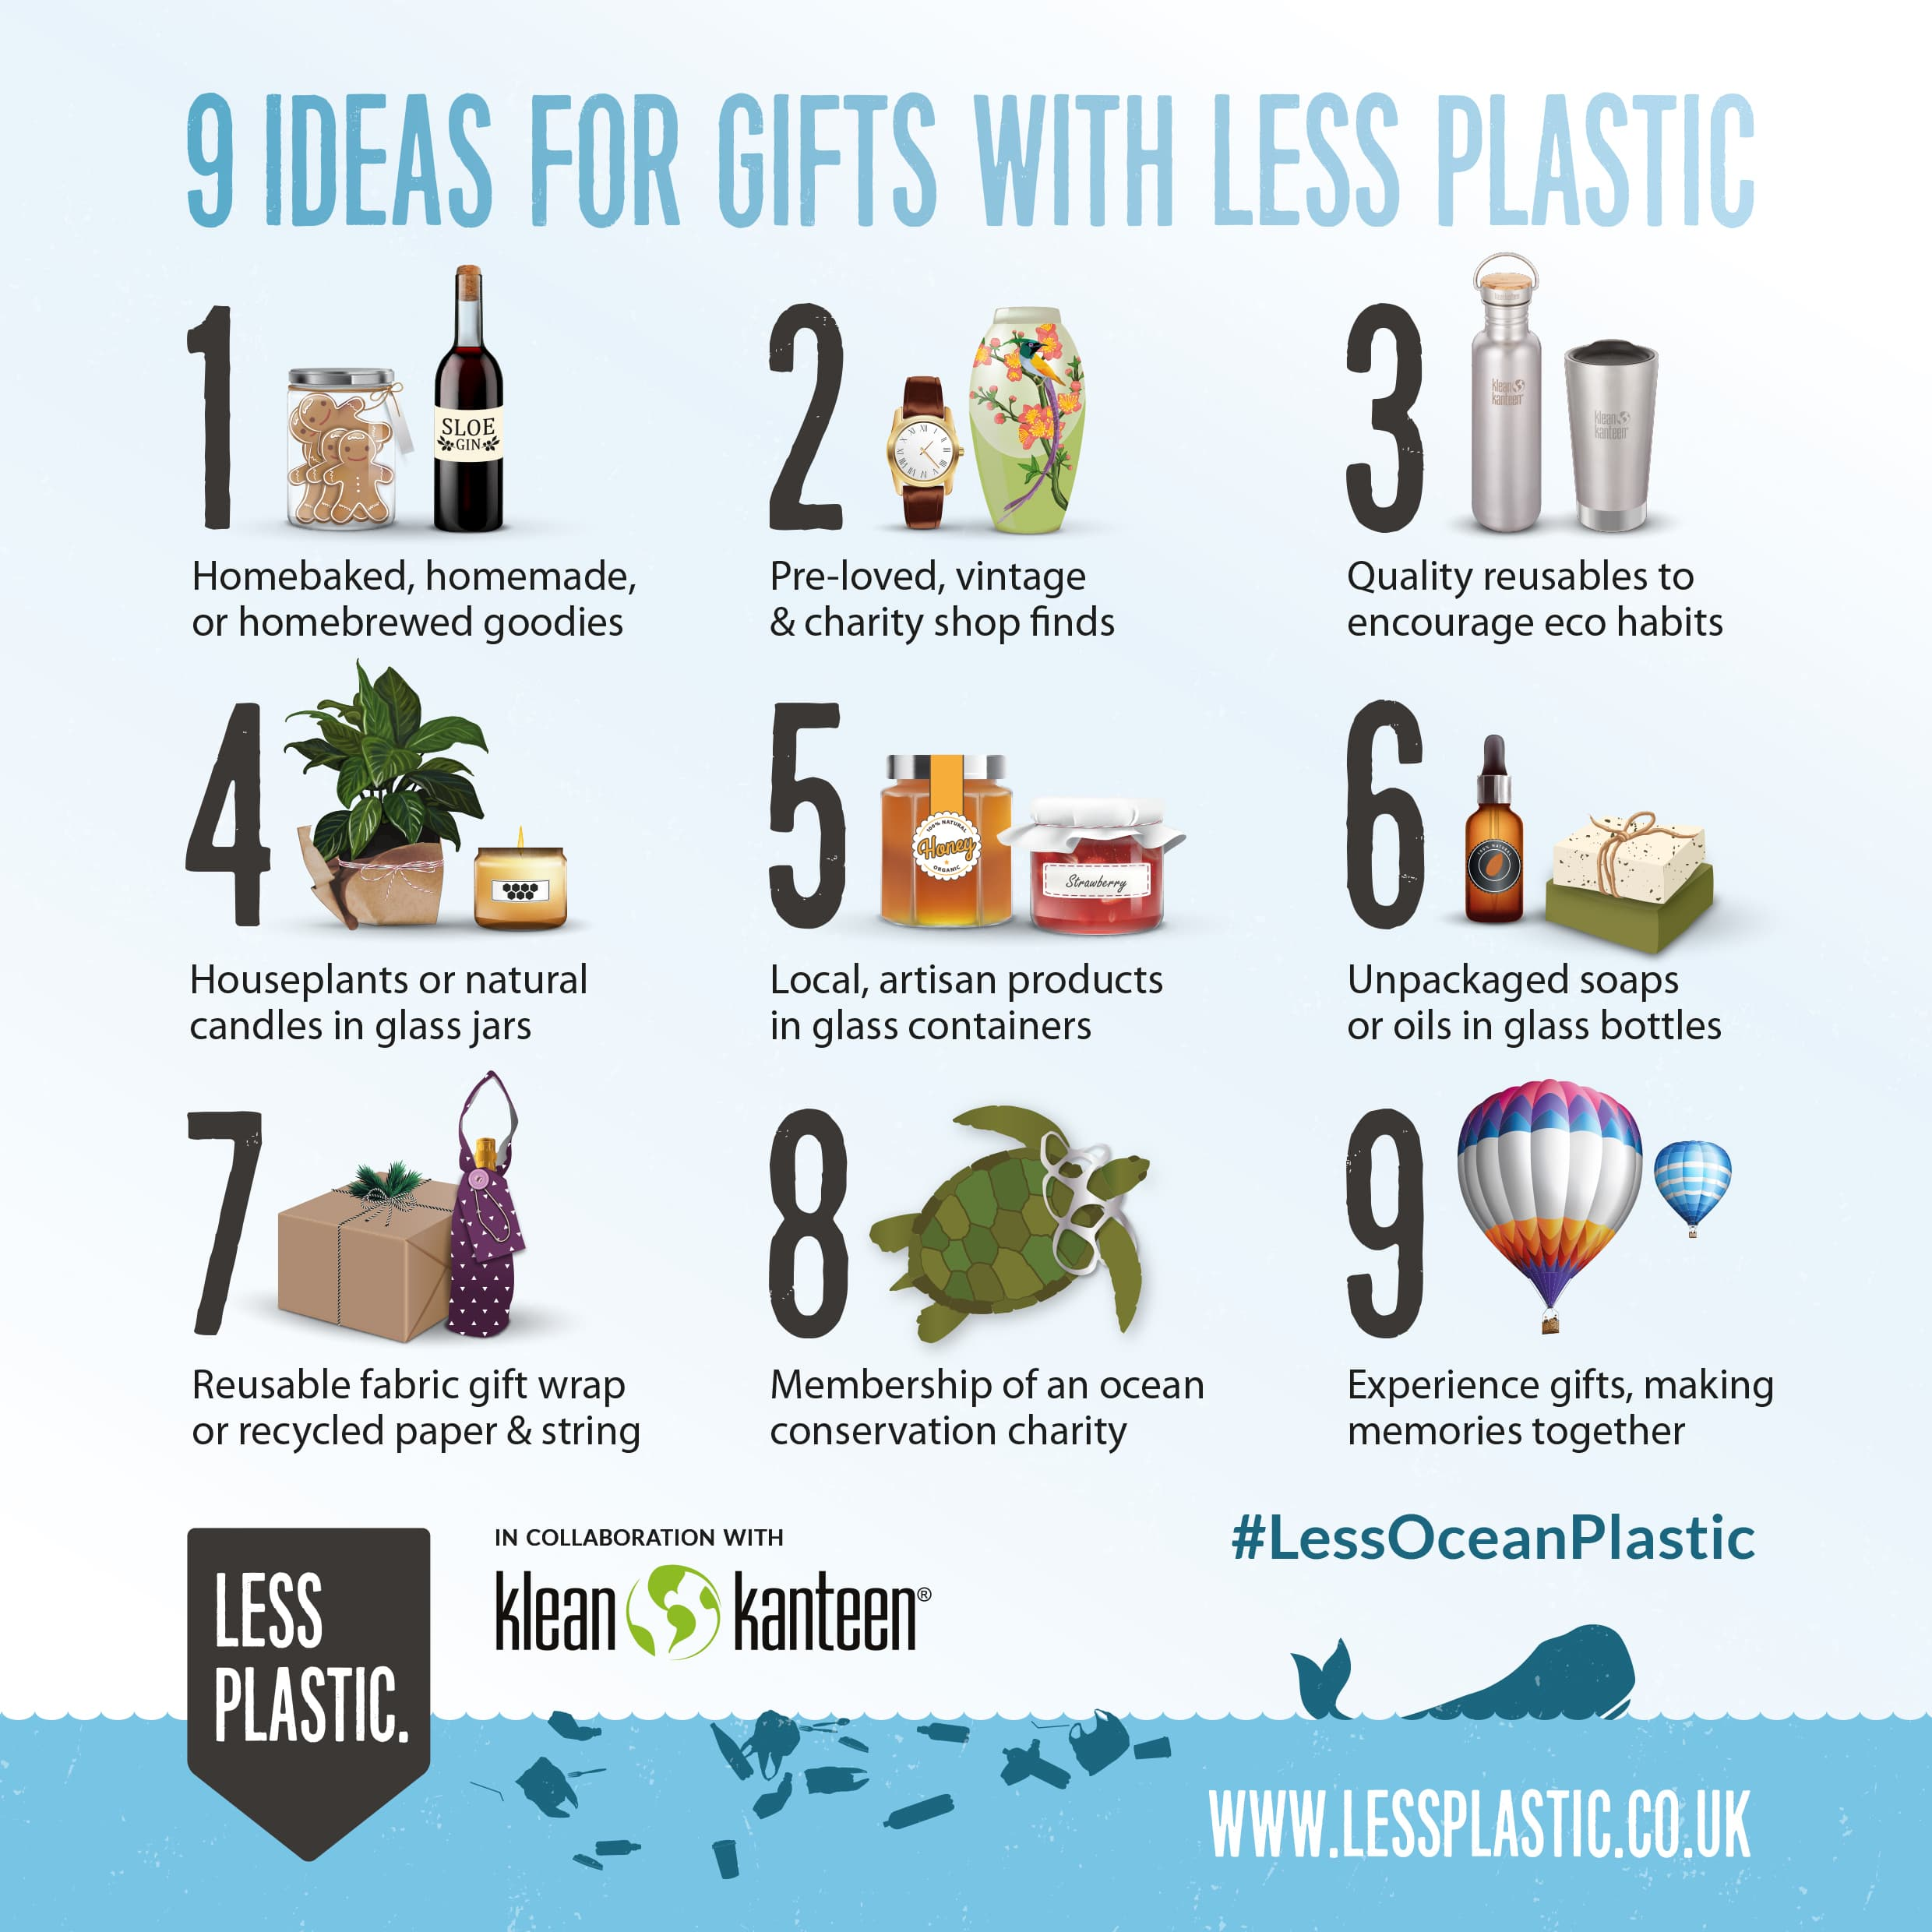 9 ideas for gifts with less plastic infographic